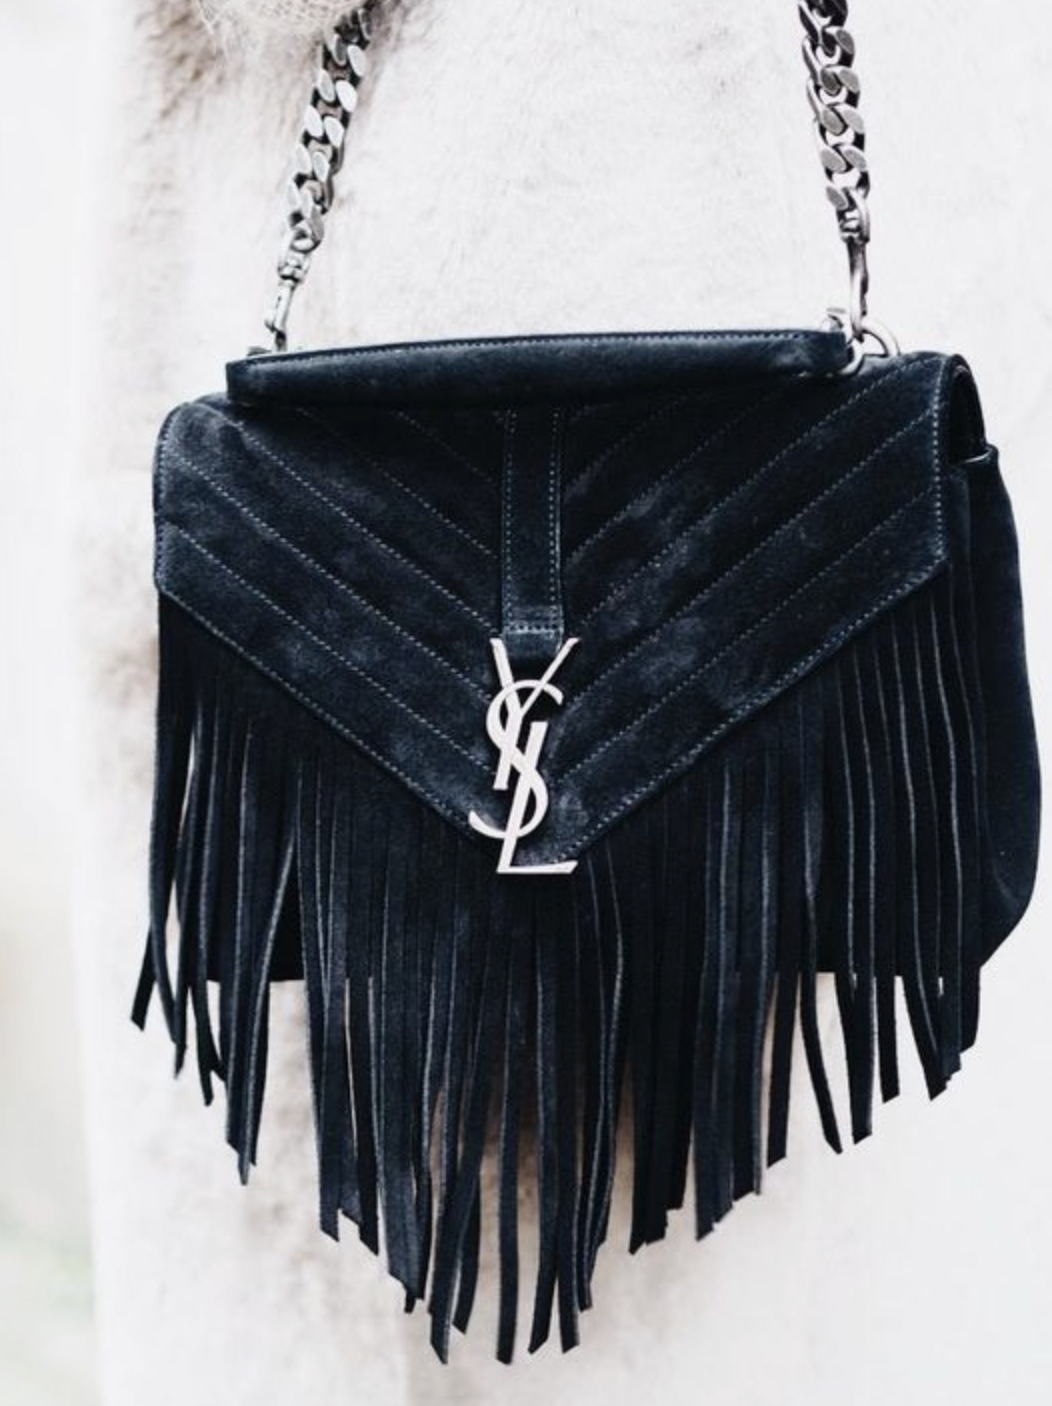 ysl suede fringe college bag   shoes + bags   Pinterest   Bags, Ysl ... b881d68d31